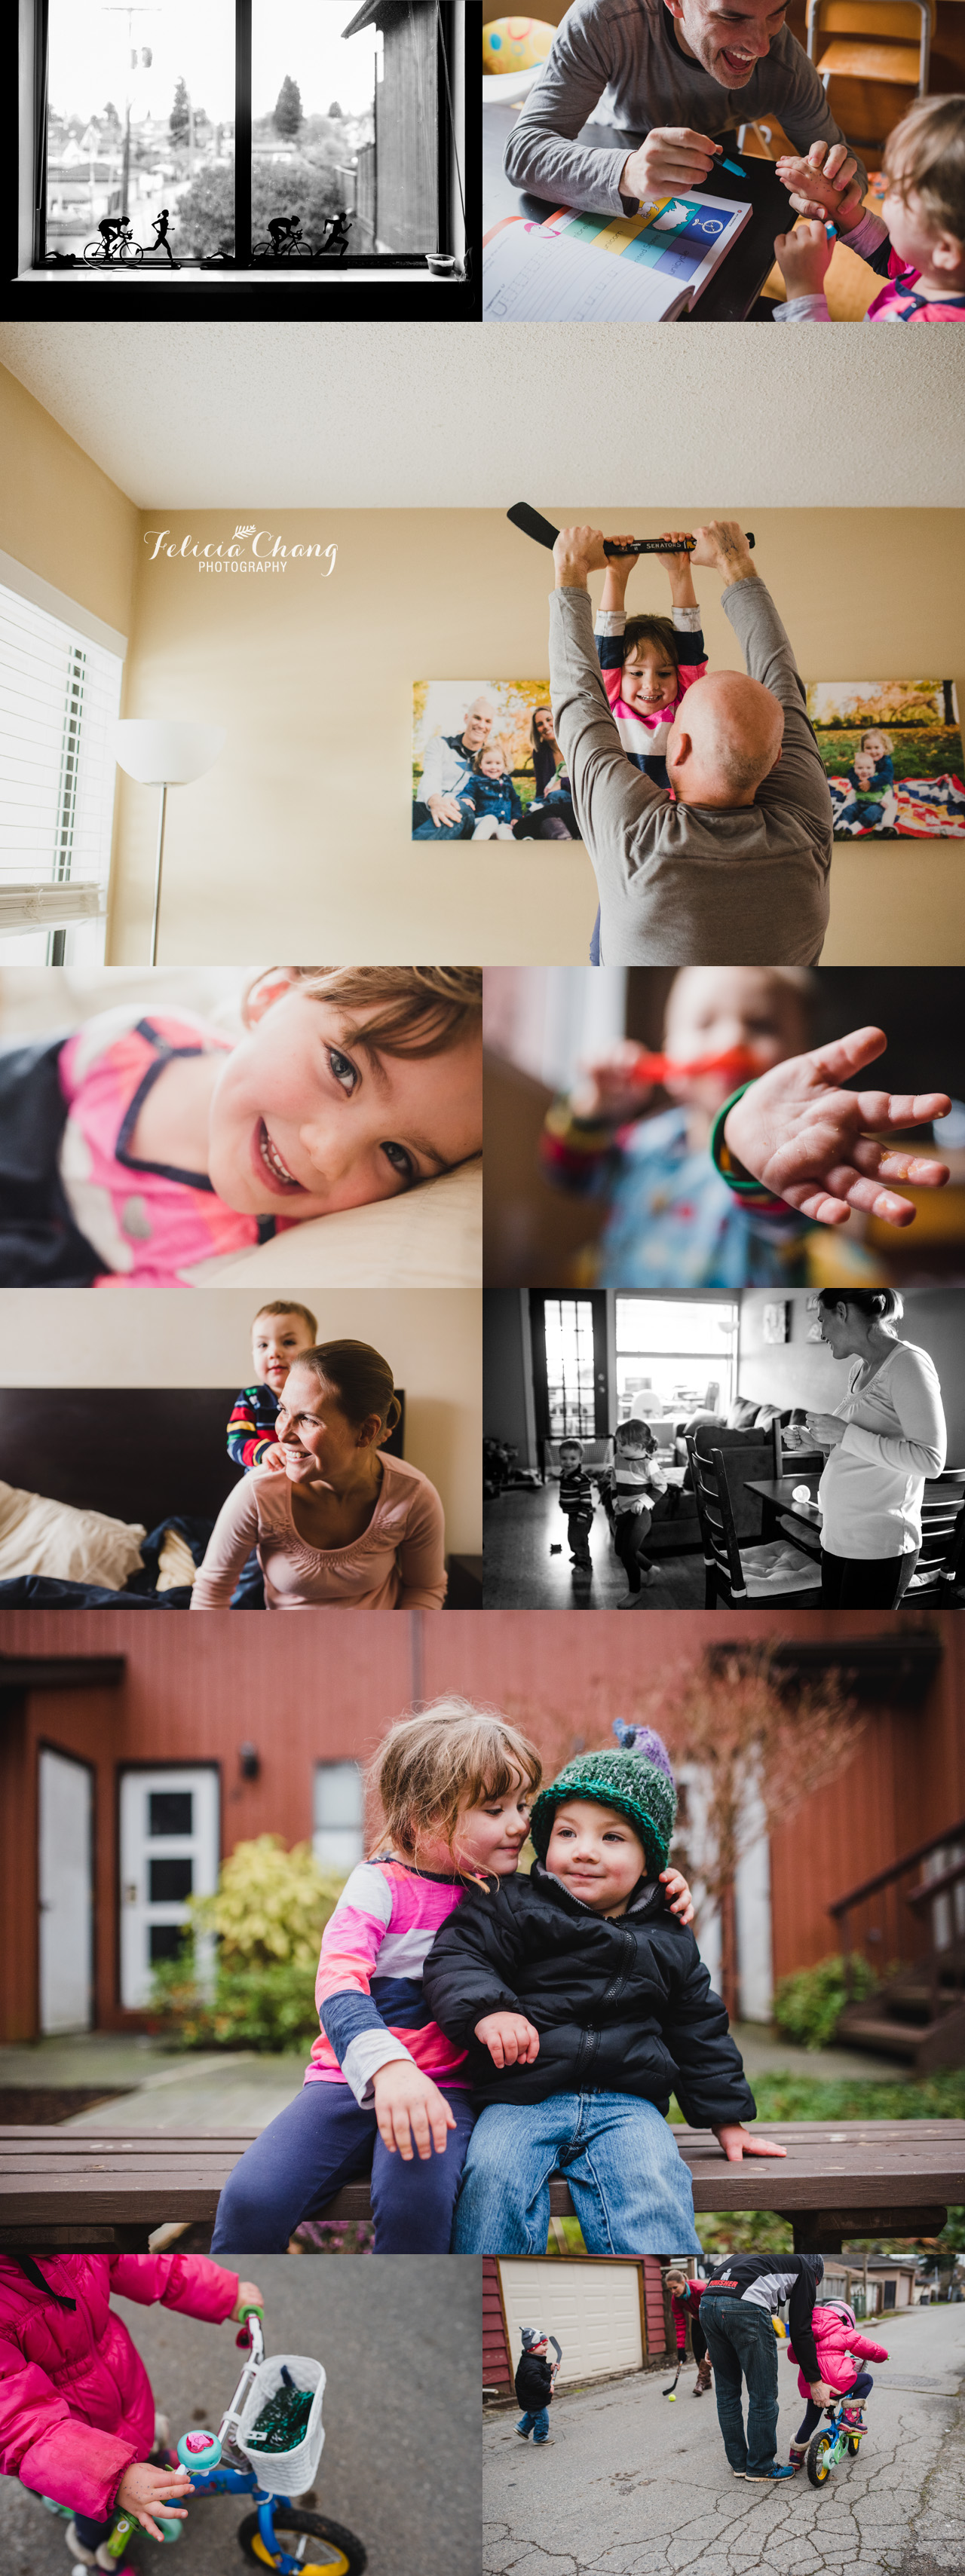 Vancouver family photos | Felicia Chang Photography